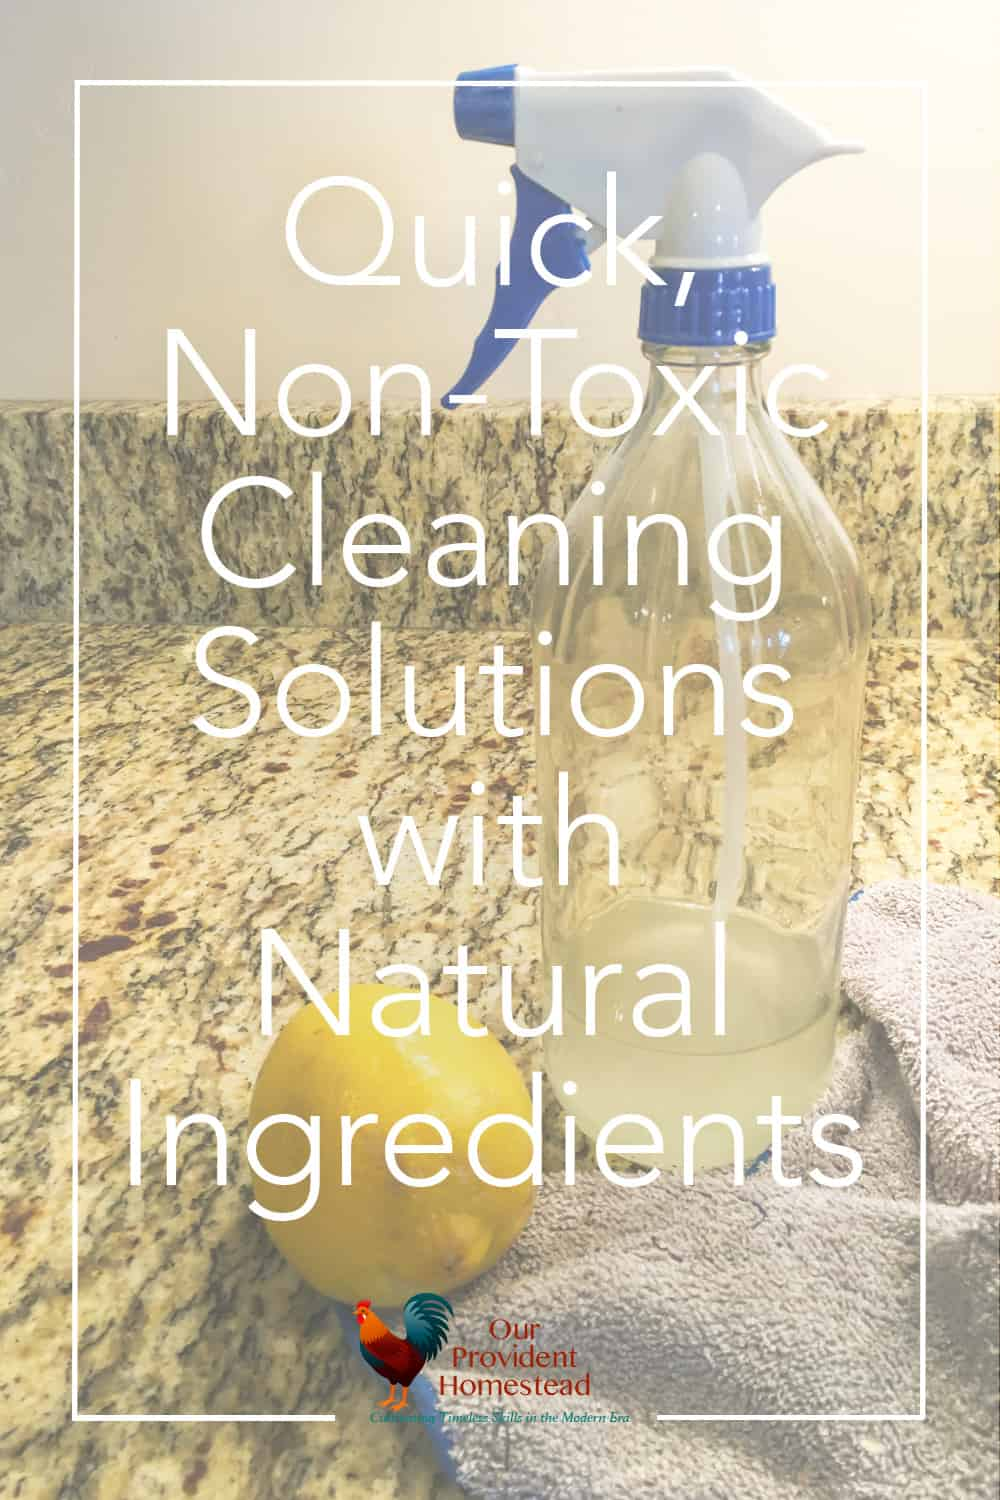 Do you love natural cleaning recipes? We have 10 recipes for natural cleaners plus tips, tricks and a shopping list to make them at home. #naturalcleaners #cleaninghacks #springcleaning #homemaking